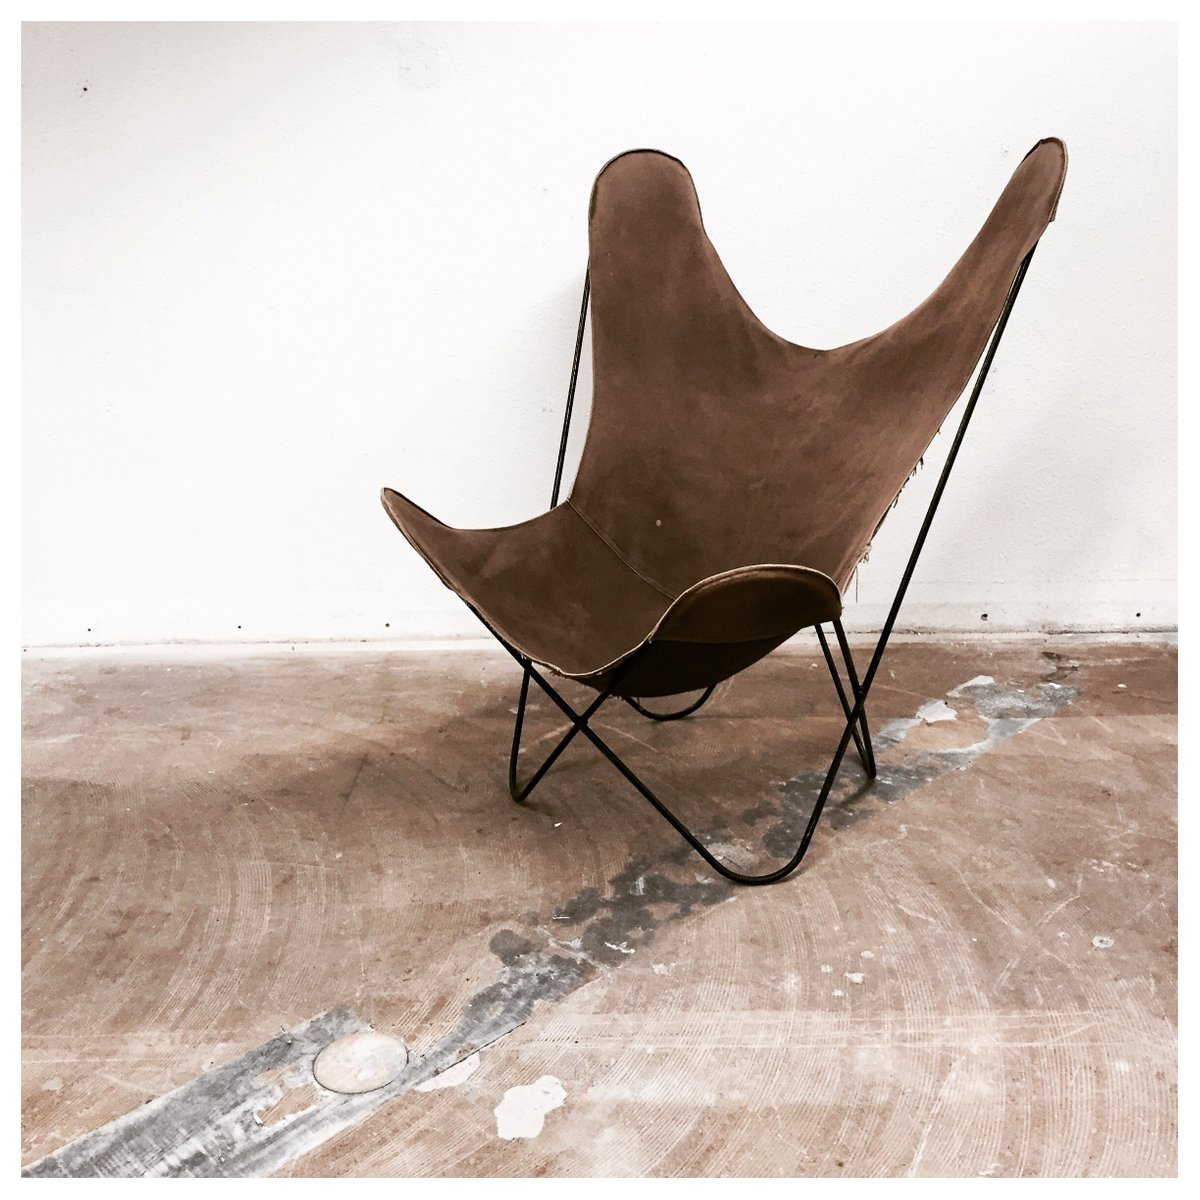 Butterfly Chair by Jorge Ferrari Hardoy, 1938 for sale at Pamono